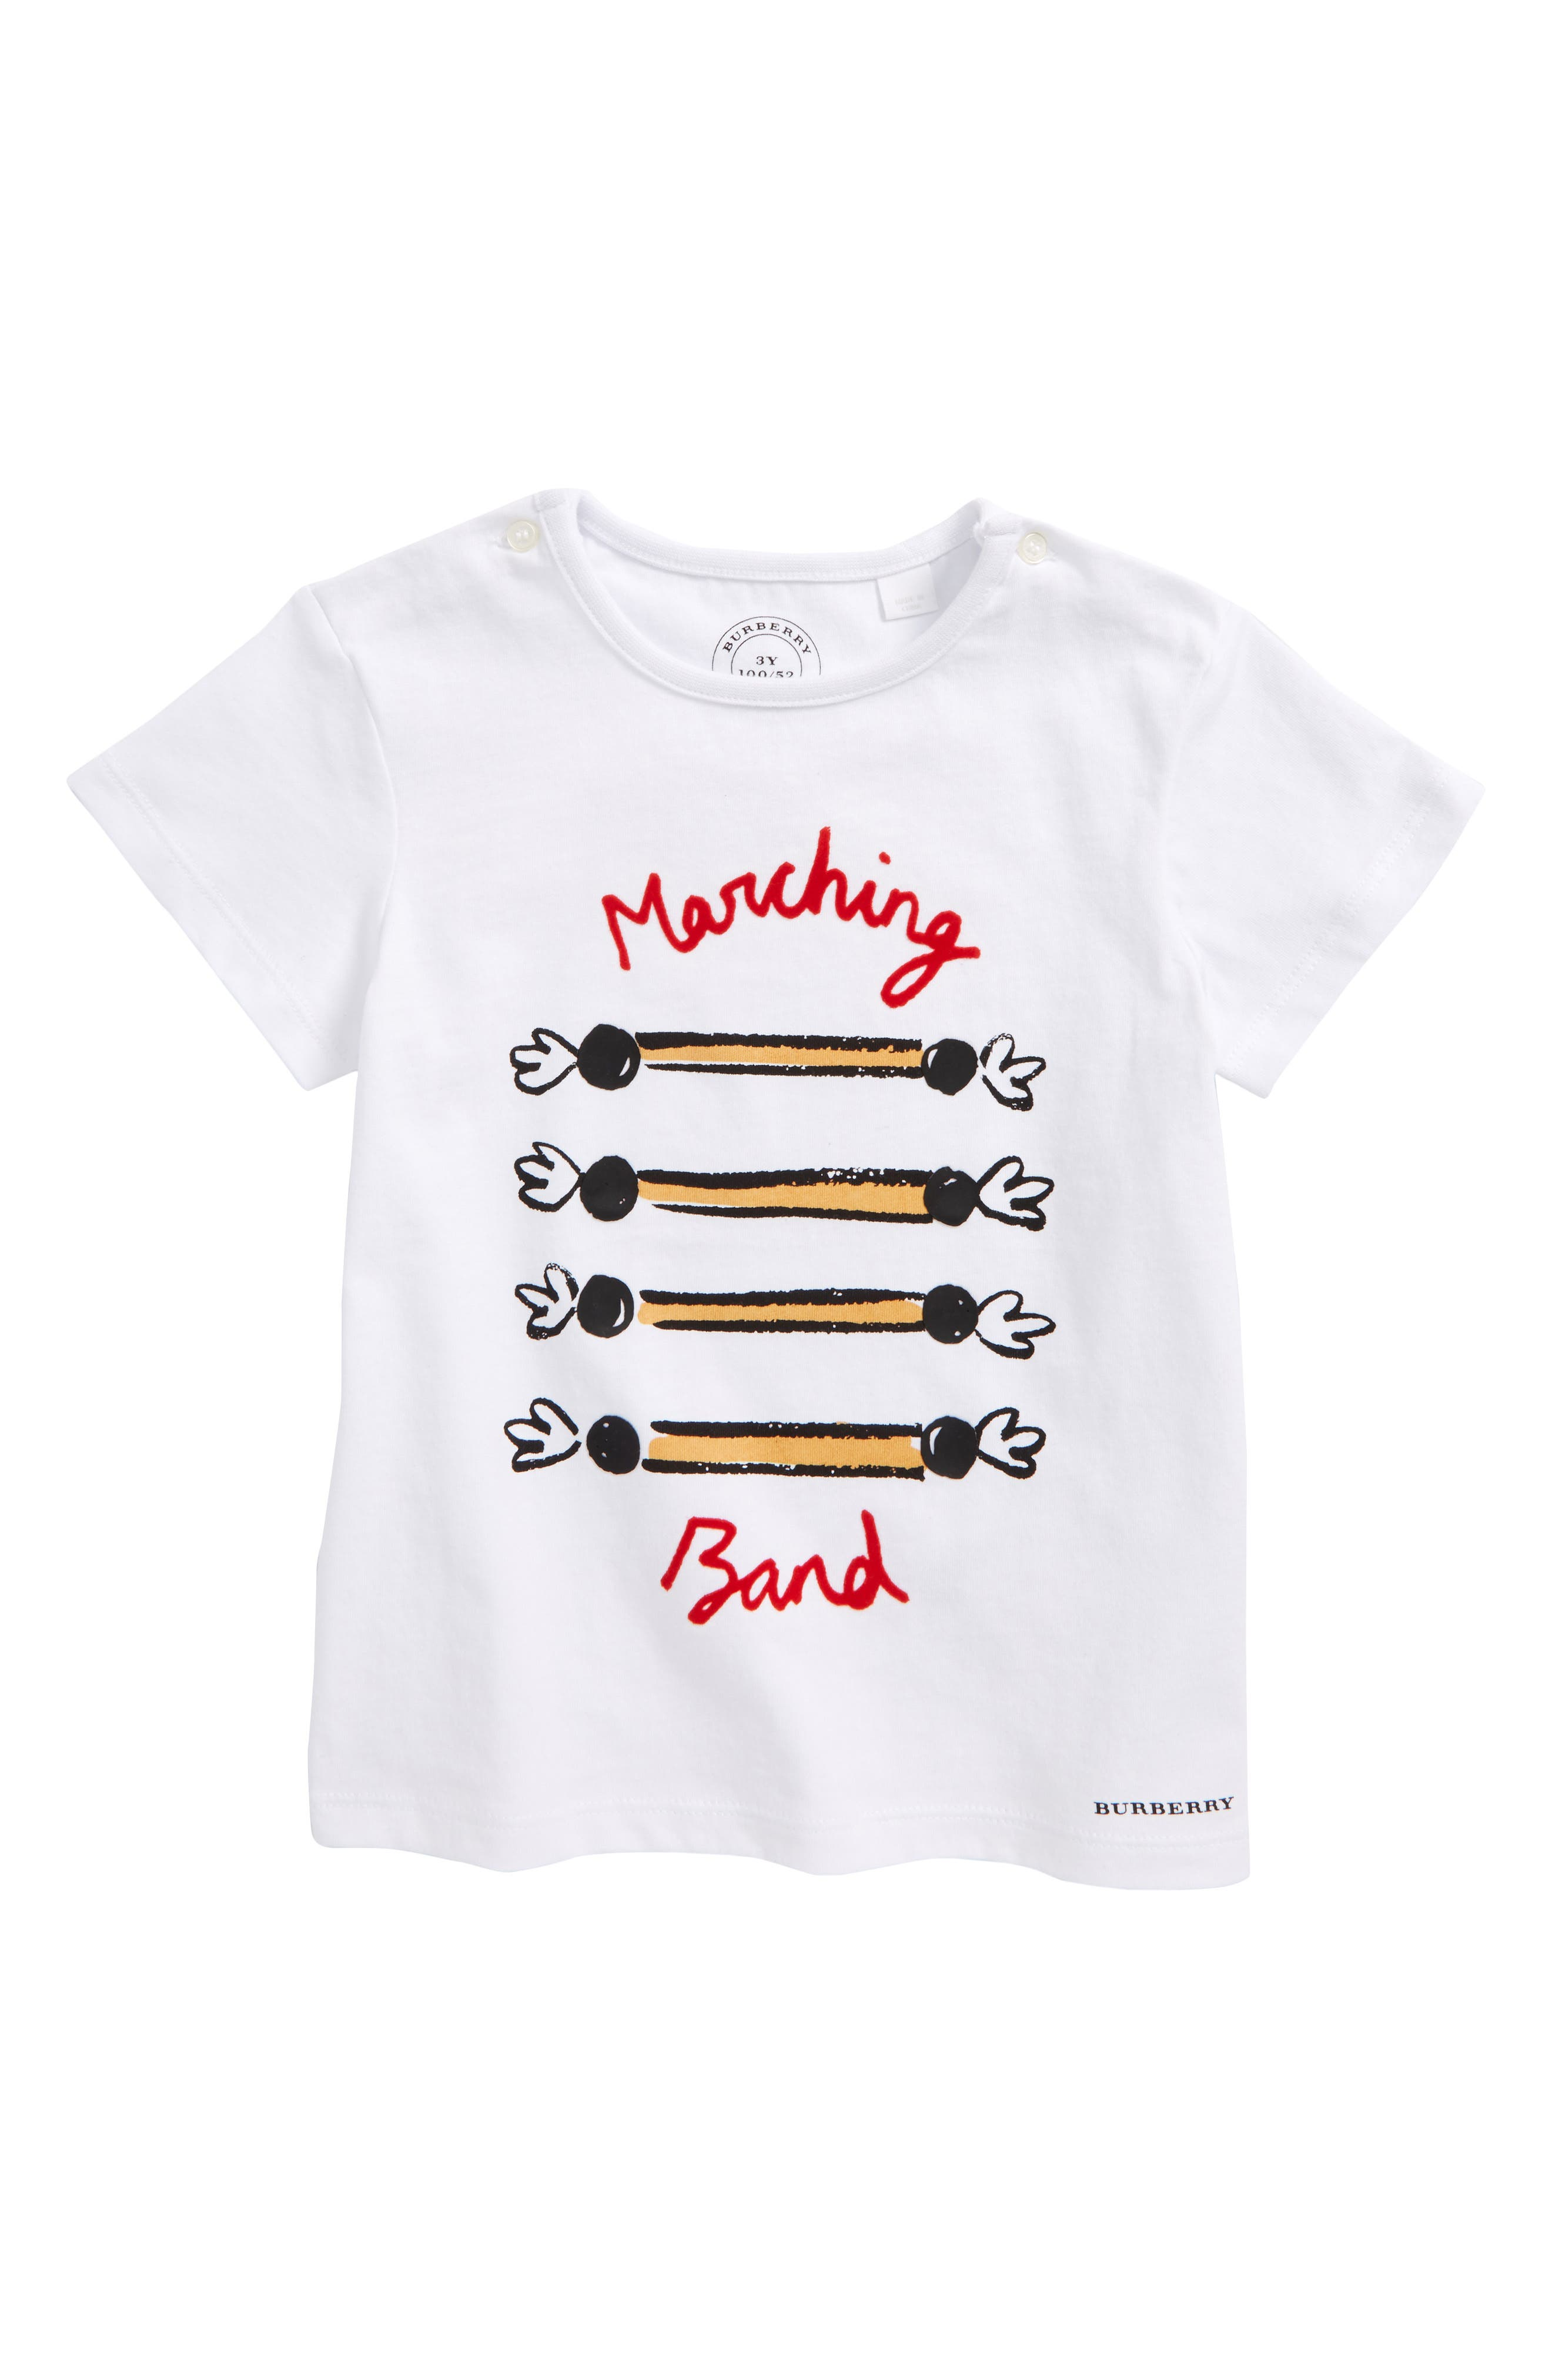 Burberry Marching Band Tee (Baby)